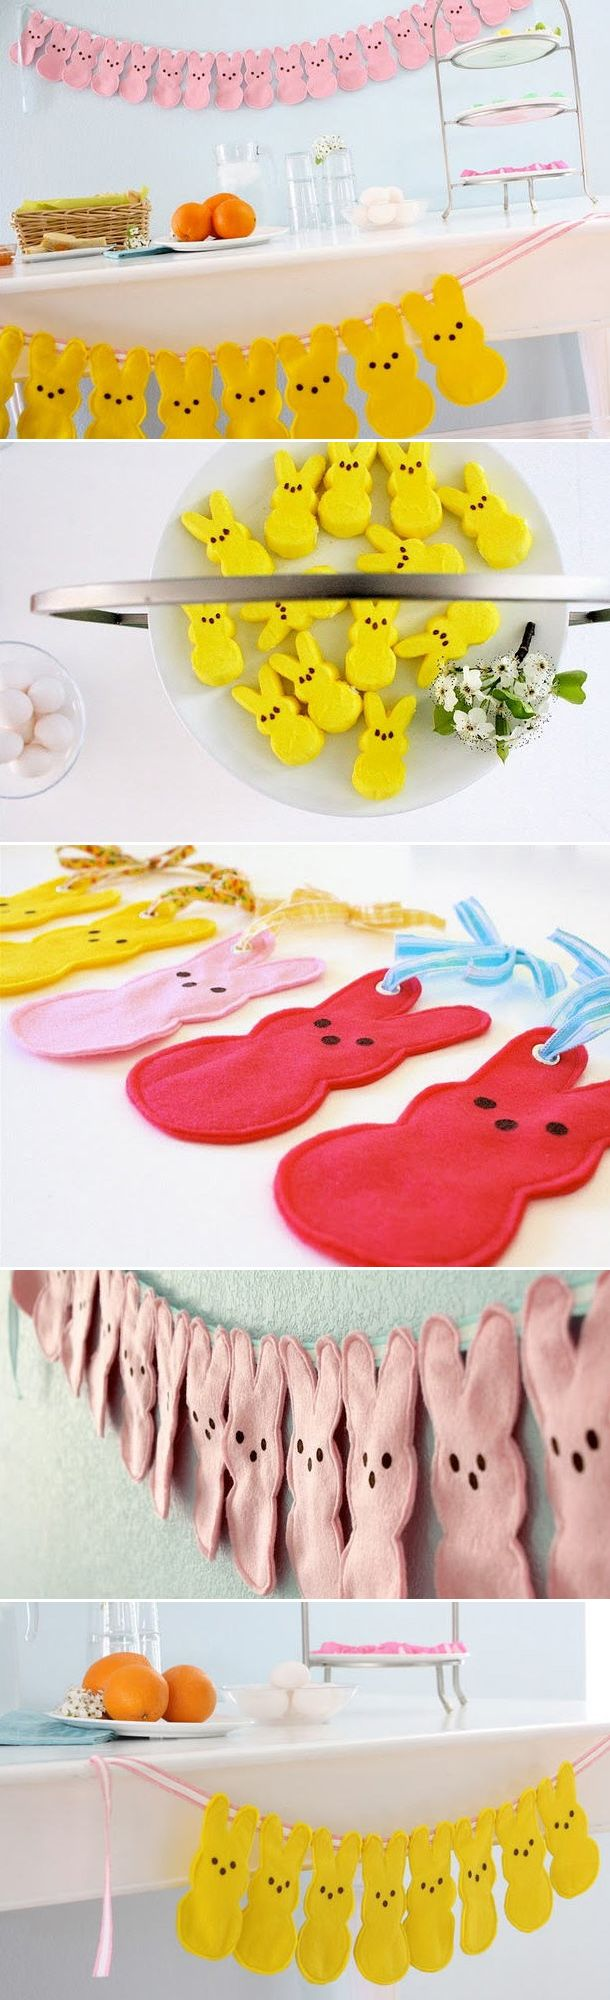 doing this for easter. Might start decorating for it in december. Why not people start decorating for xmas in October.